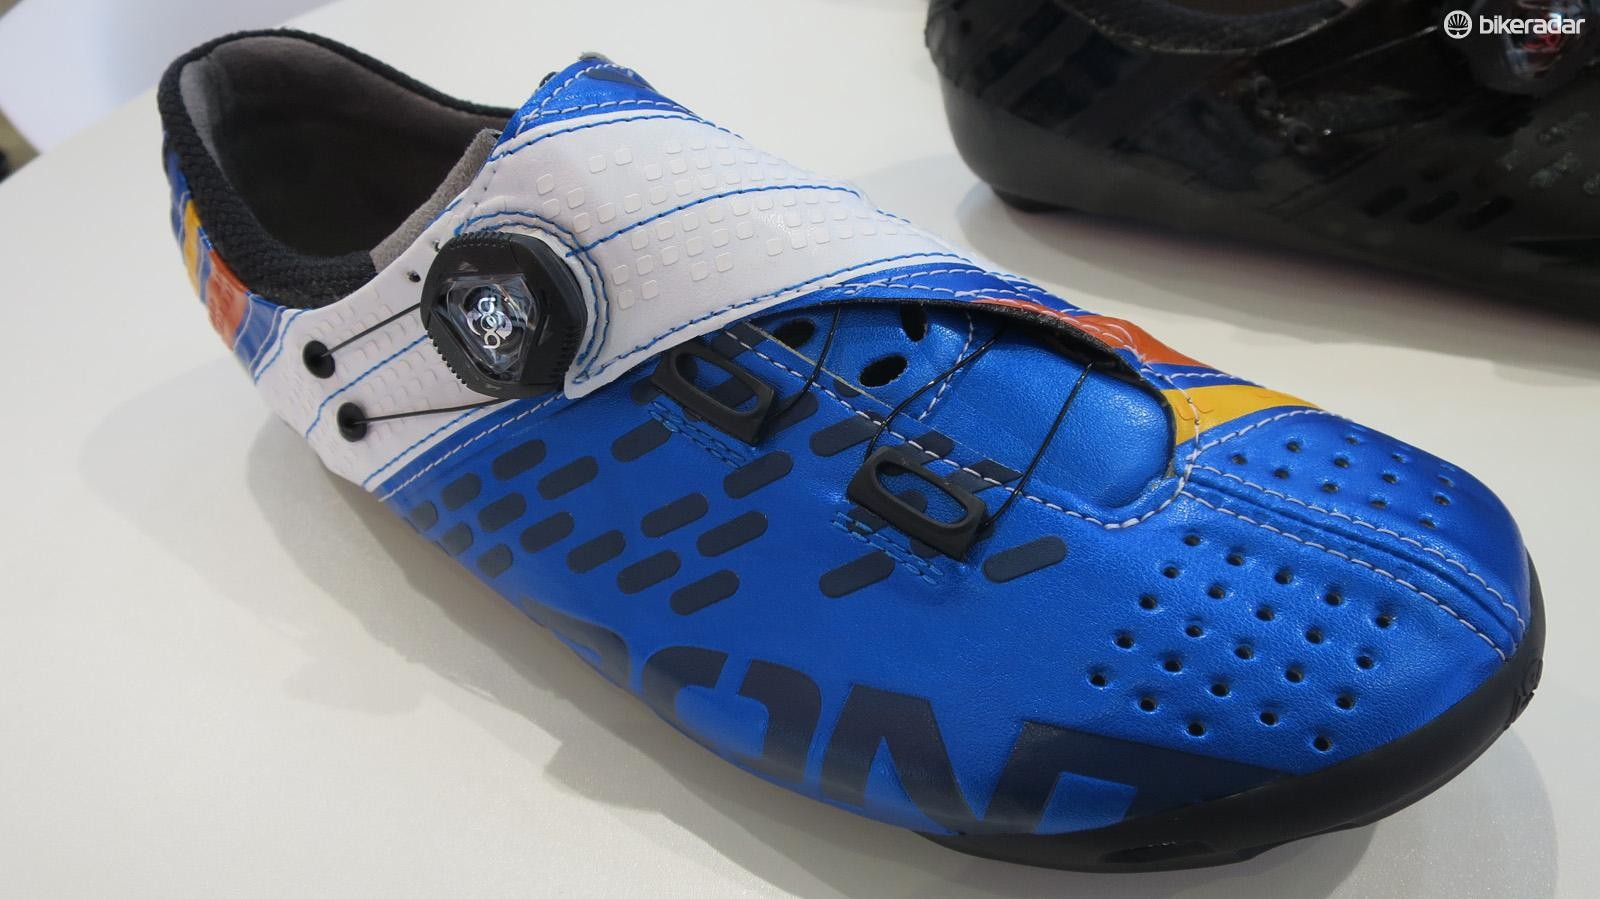 The Helix's upper combines super light Microtex with bonded and stitched sections, and both embossed and bonded graphics